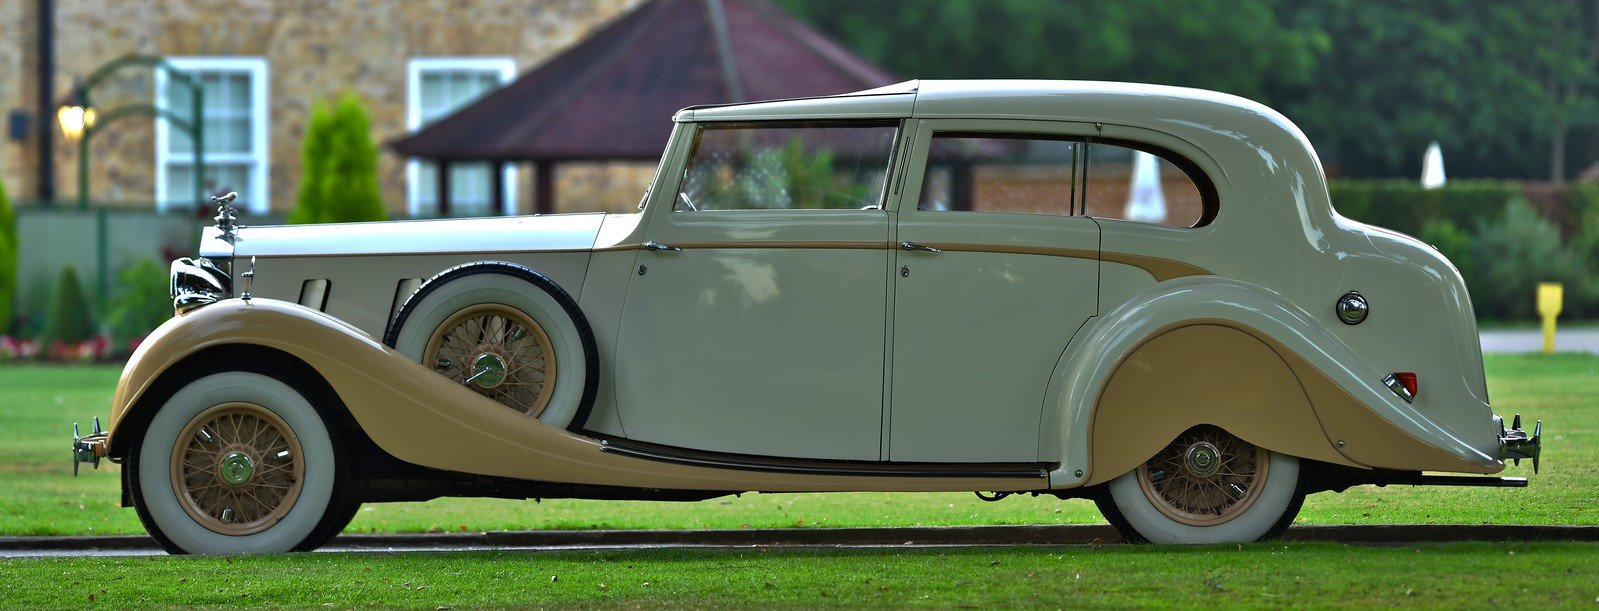 1936 Rolls-Royce Phantom III Sedanca de Ville by Gurney Nutt For Sale (picture 3 of 6)